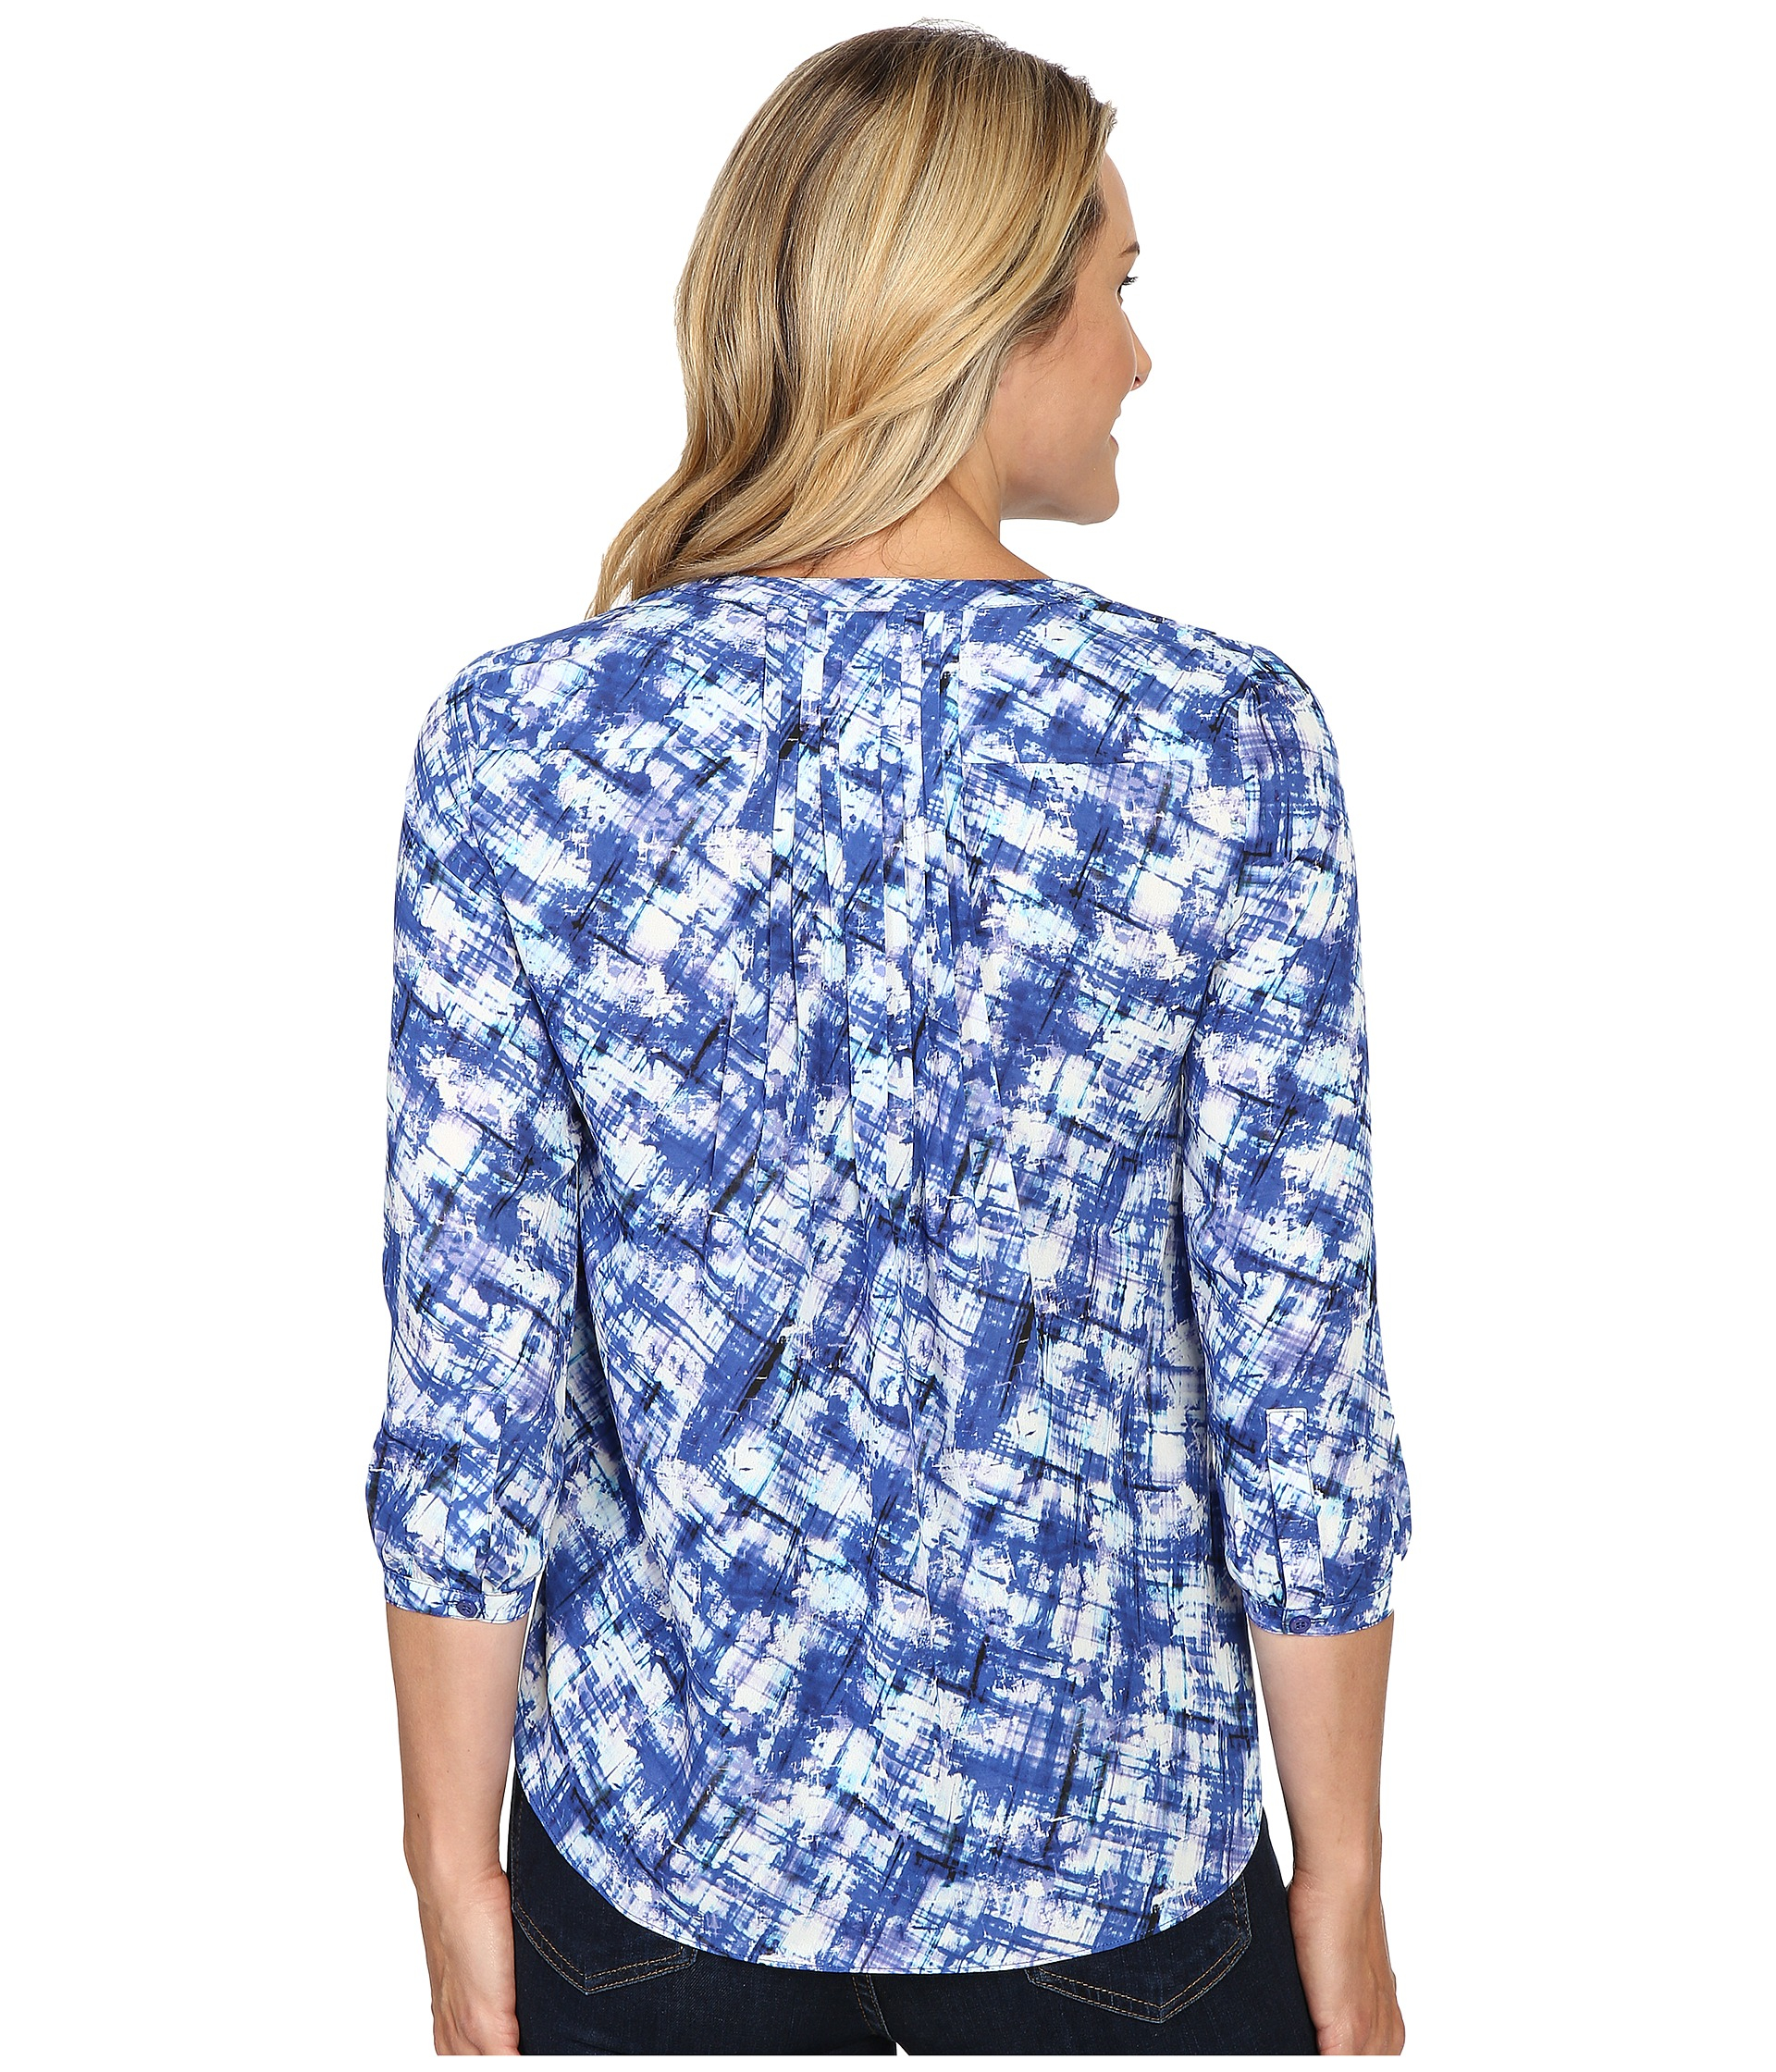 Lyst nydj henley blouse in blue for 20 34 35 dress shirts